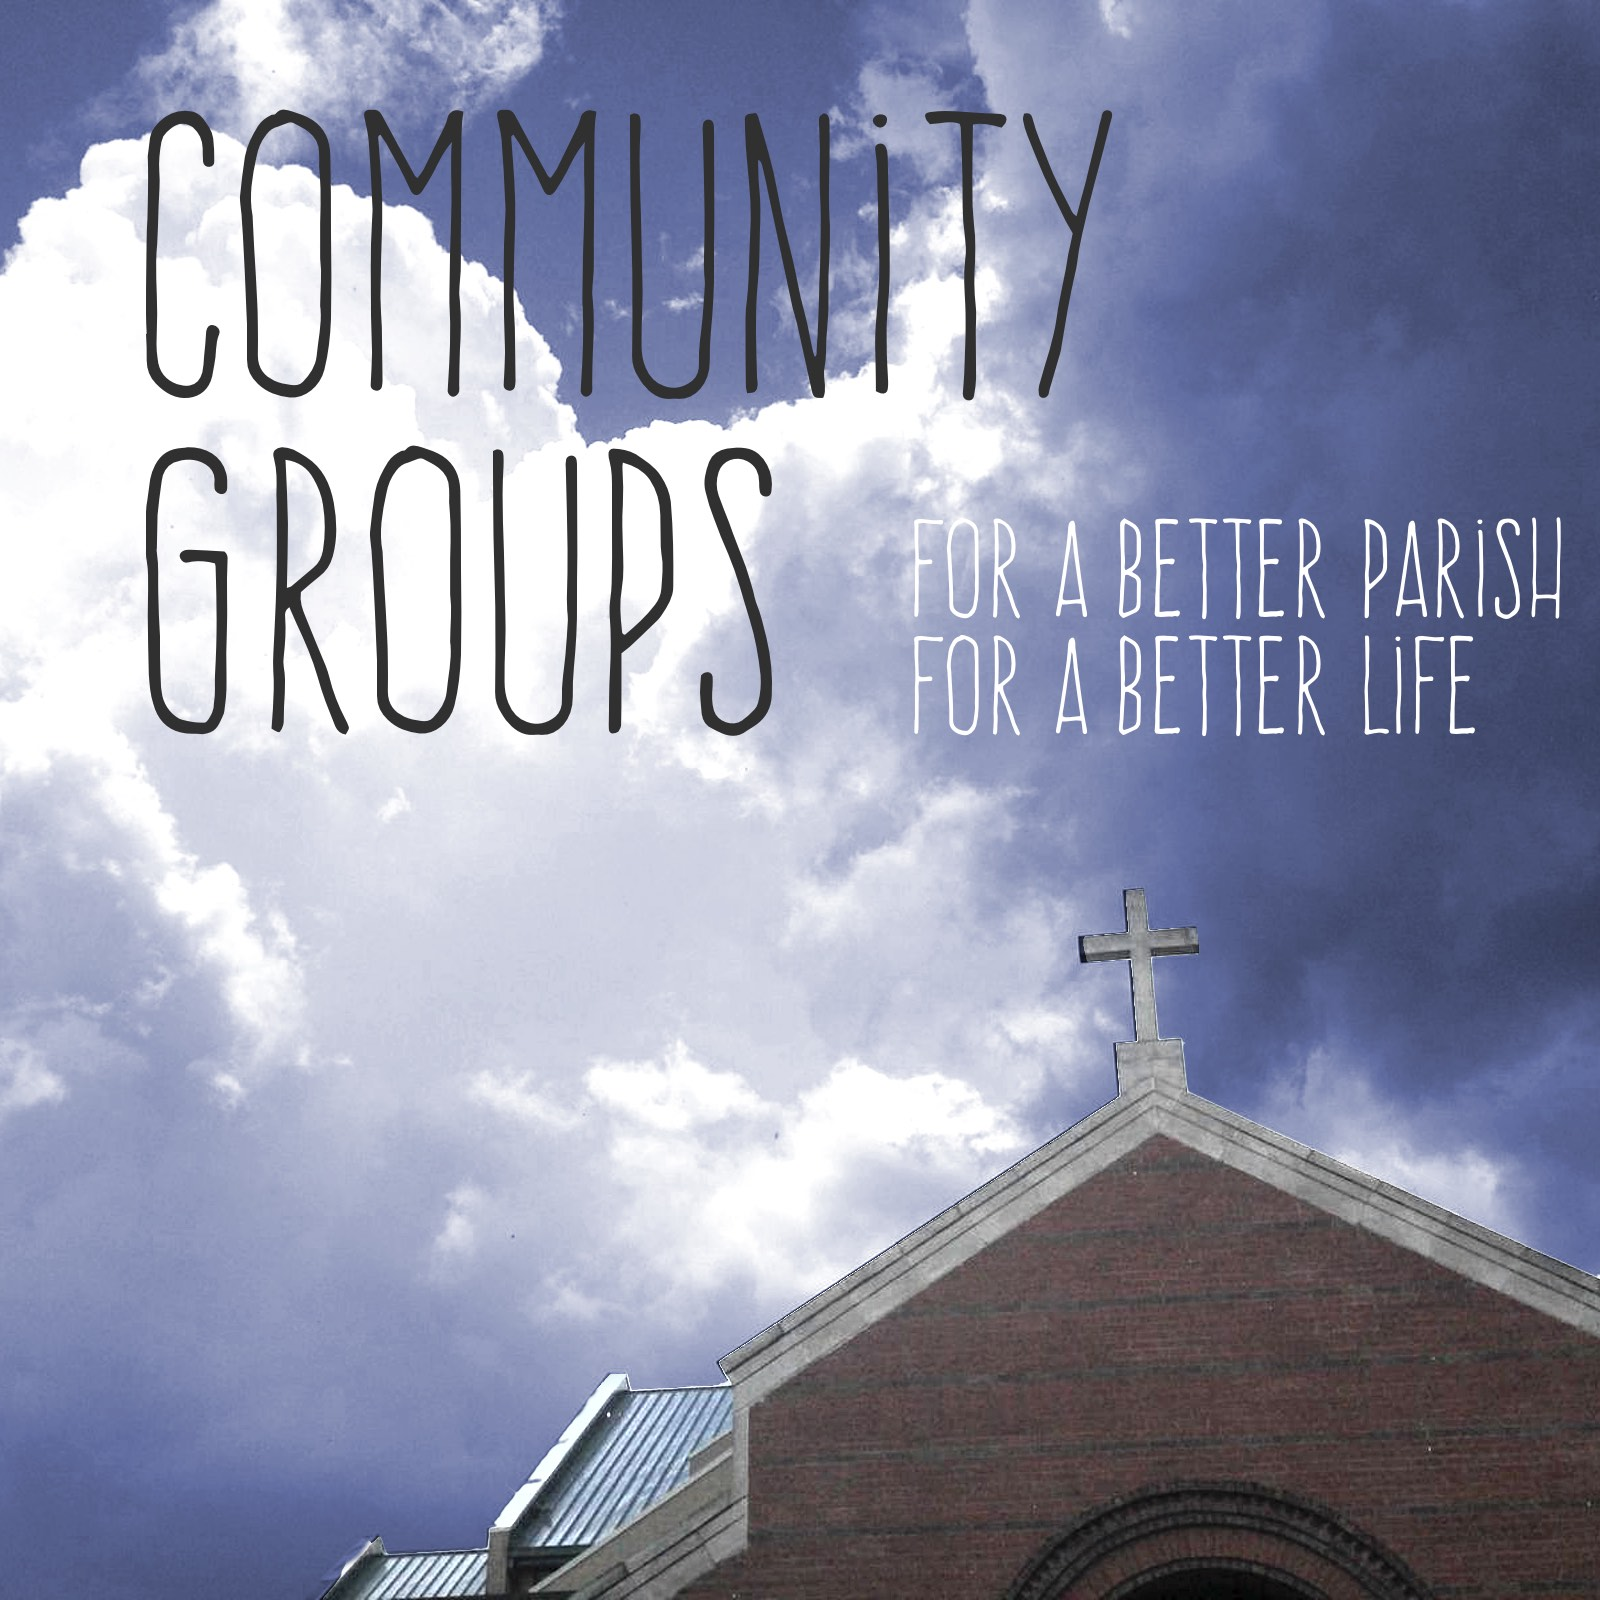 My banner ads on my parish website for getting people into community groups.